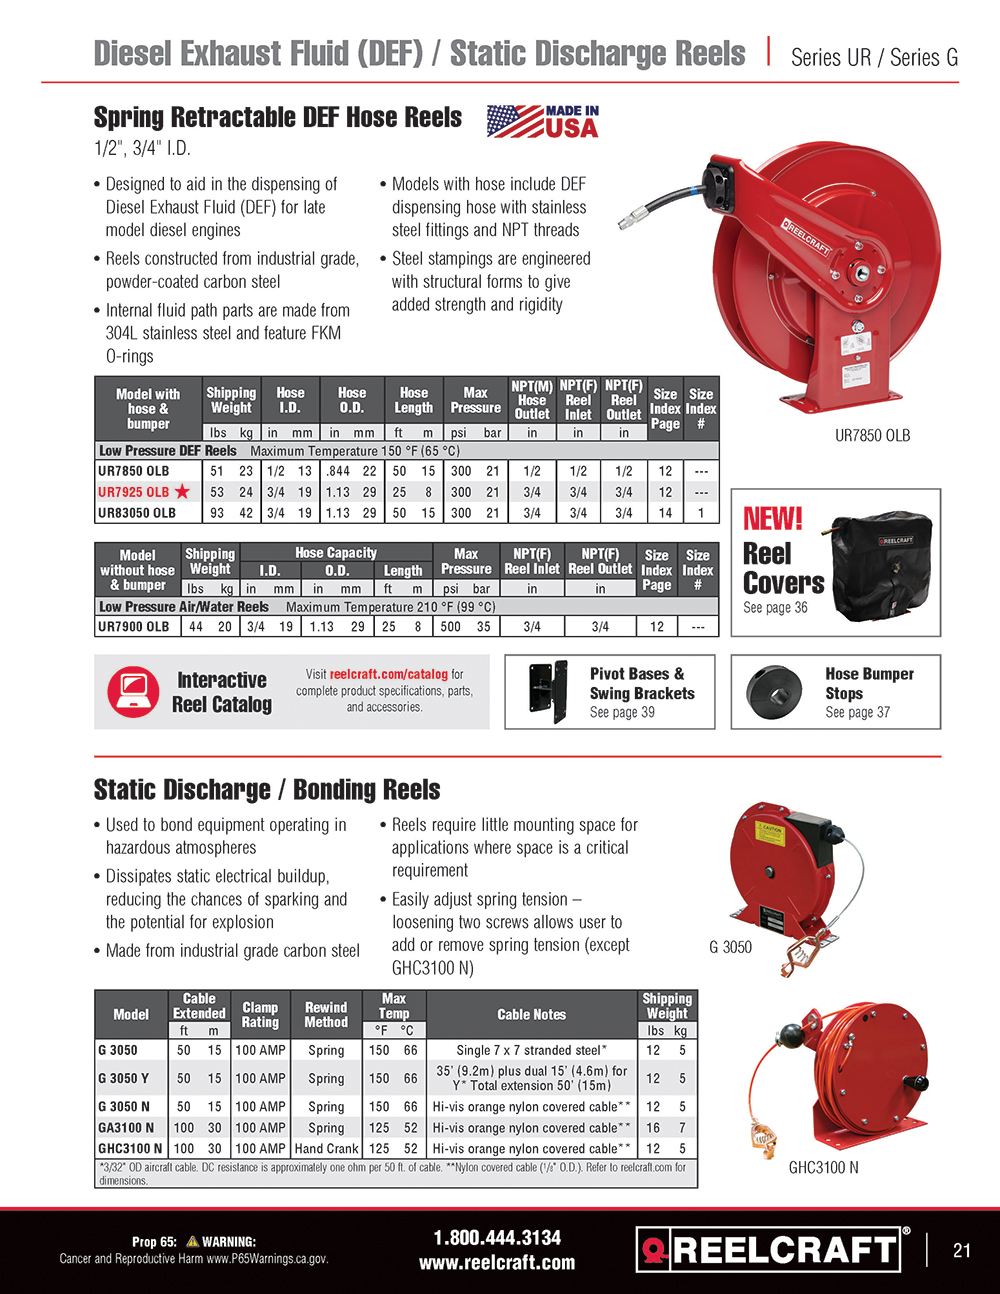 Reelcraft Catalog Page 21 - Series S Hose Reels